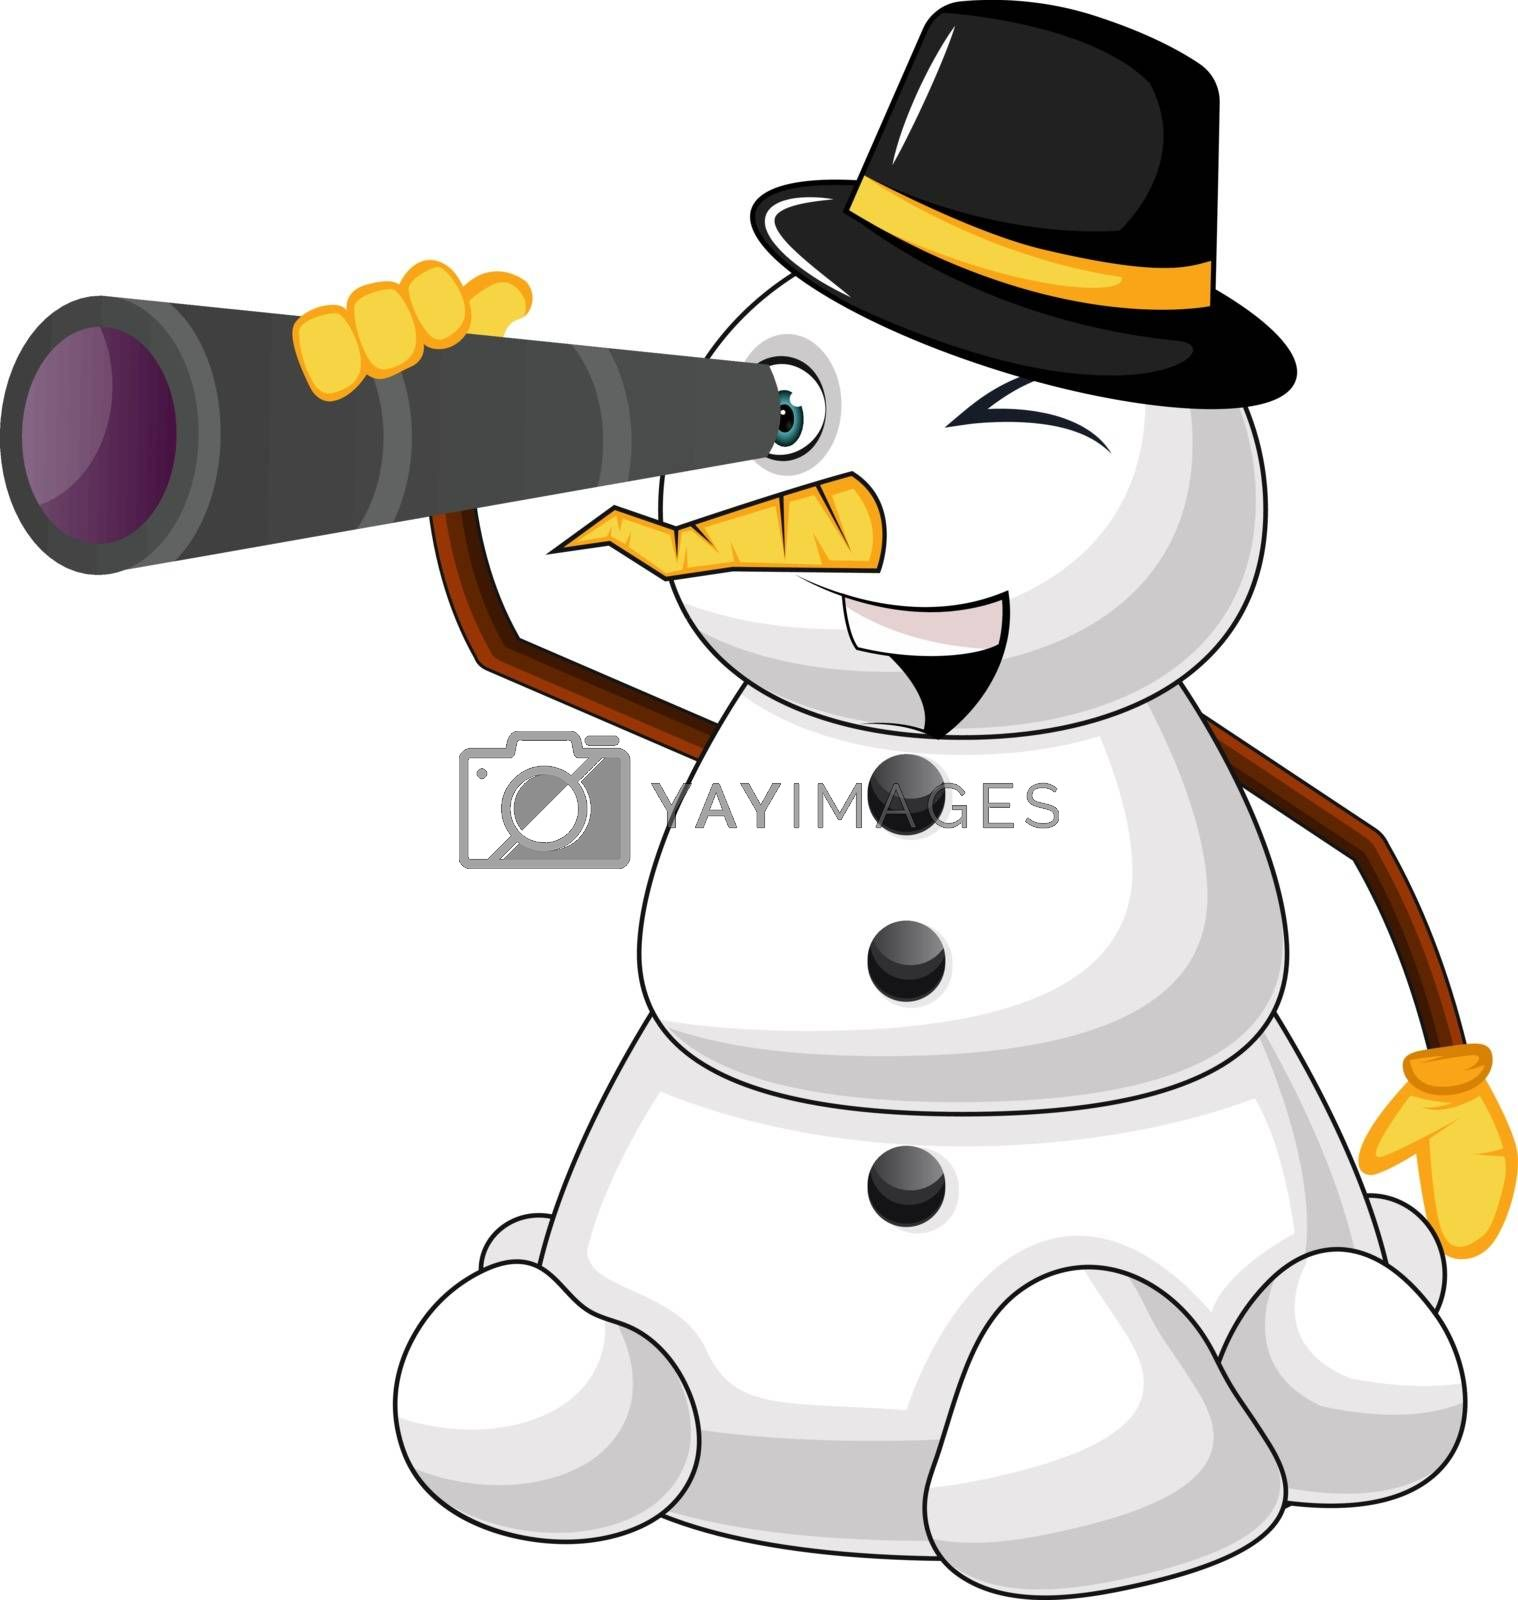 Royalty free image of Snowman with telescope illustration vector on white background by Morphart